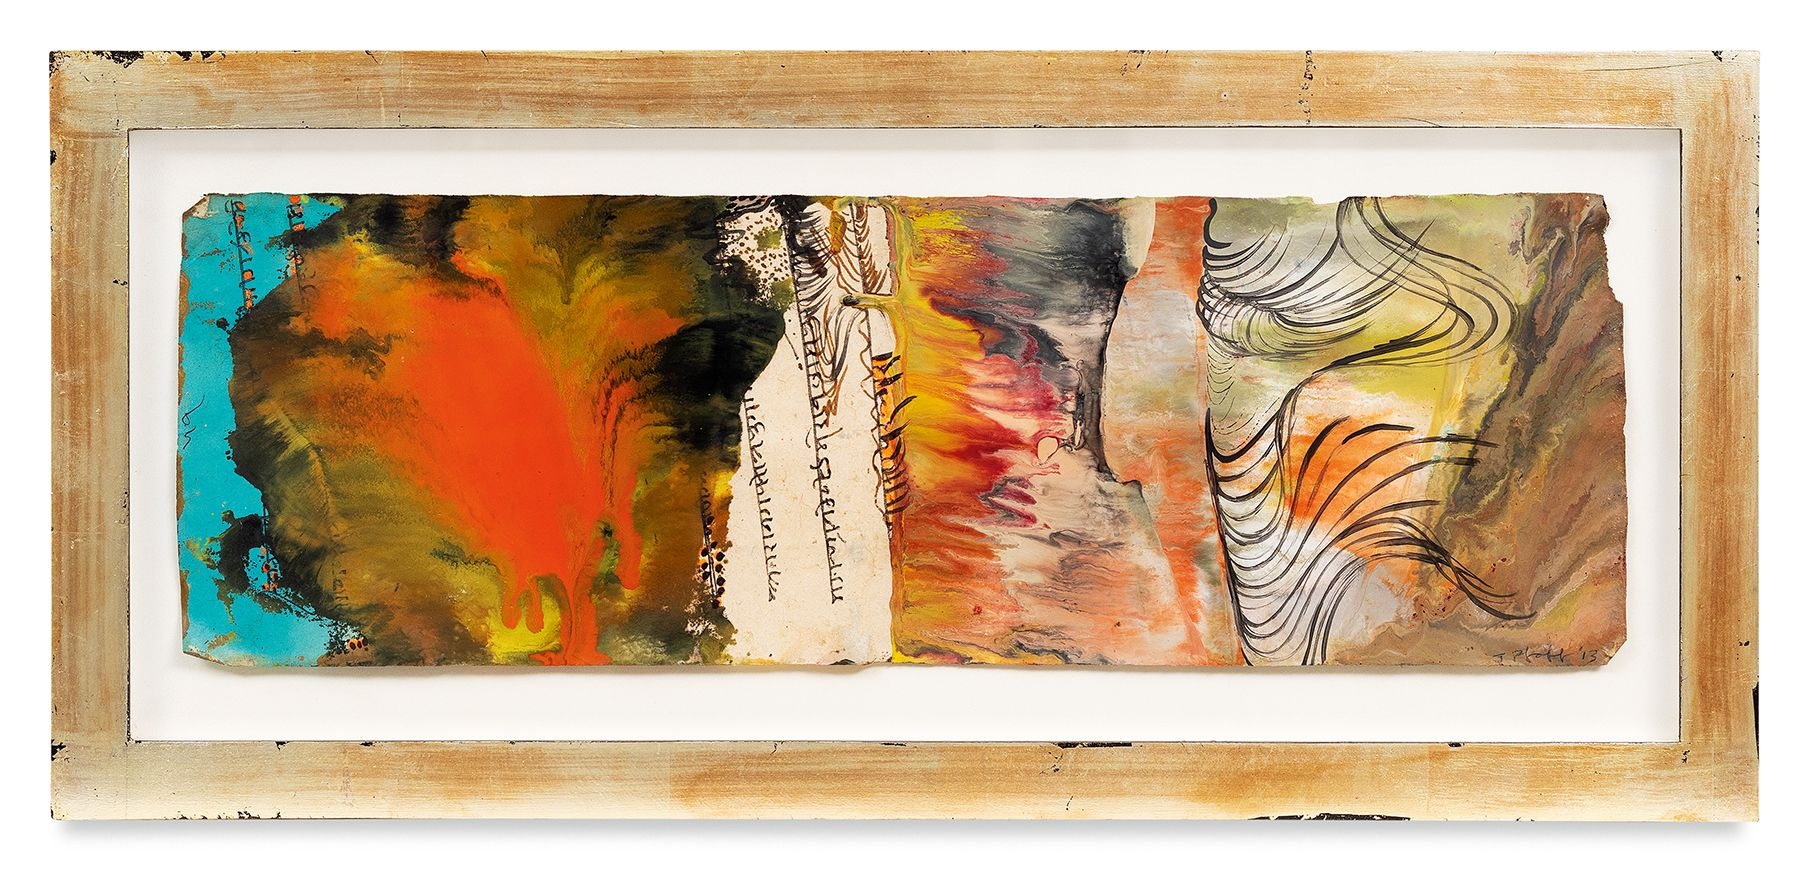 Raga 6, 2013, Oil stick, encaustic, vintage Indian paper, in artist's frame, 10 x 22 inches, 25.4 x 55.9 cm, MMG#30624